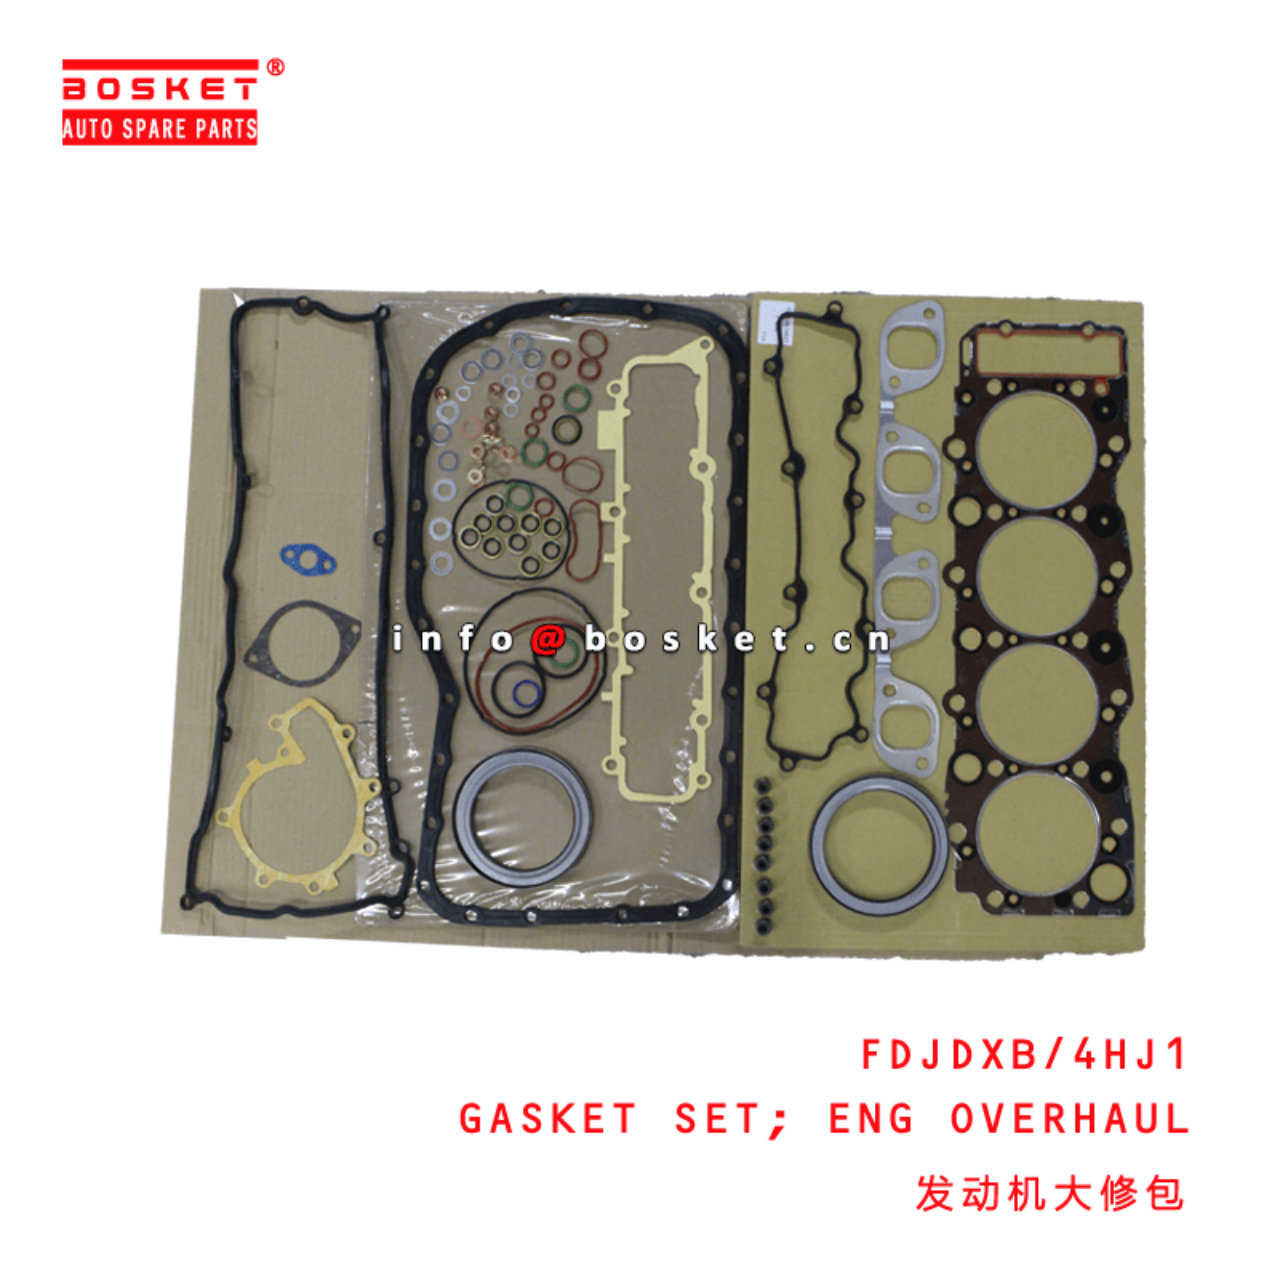 FDJDXB/4HJ1 Engine Overhaul Gasket Set Suitable for ISUZU 4HJ1